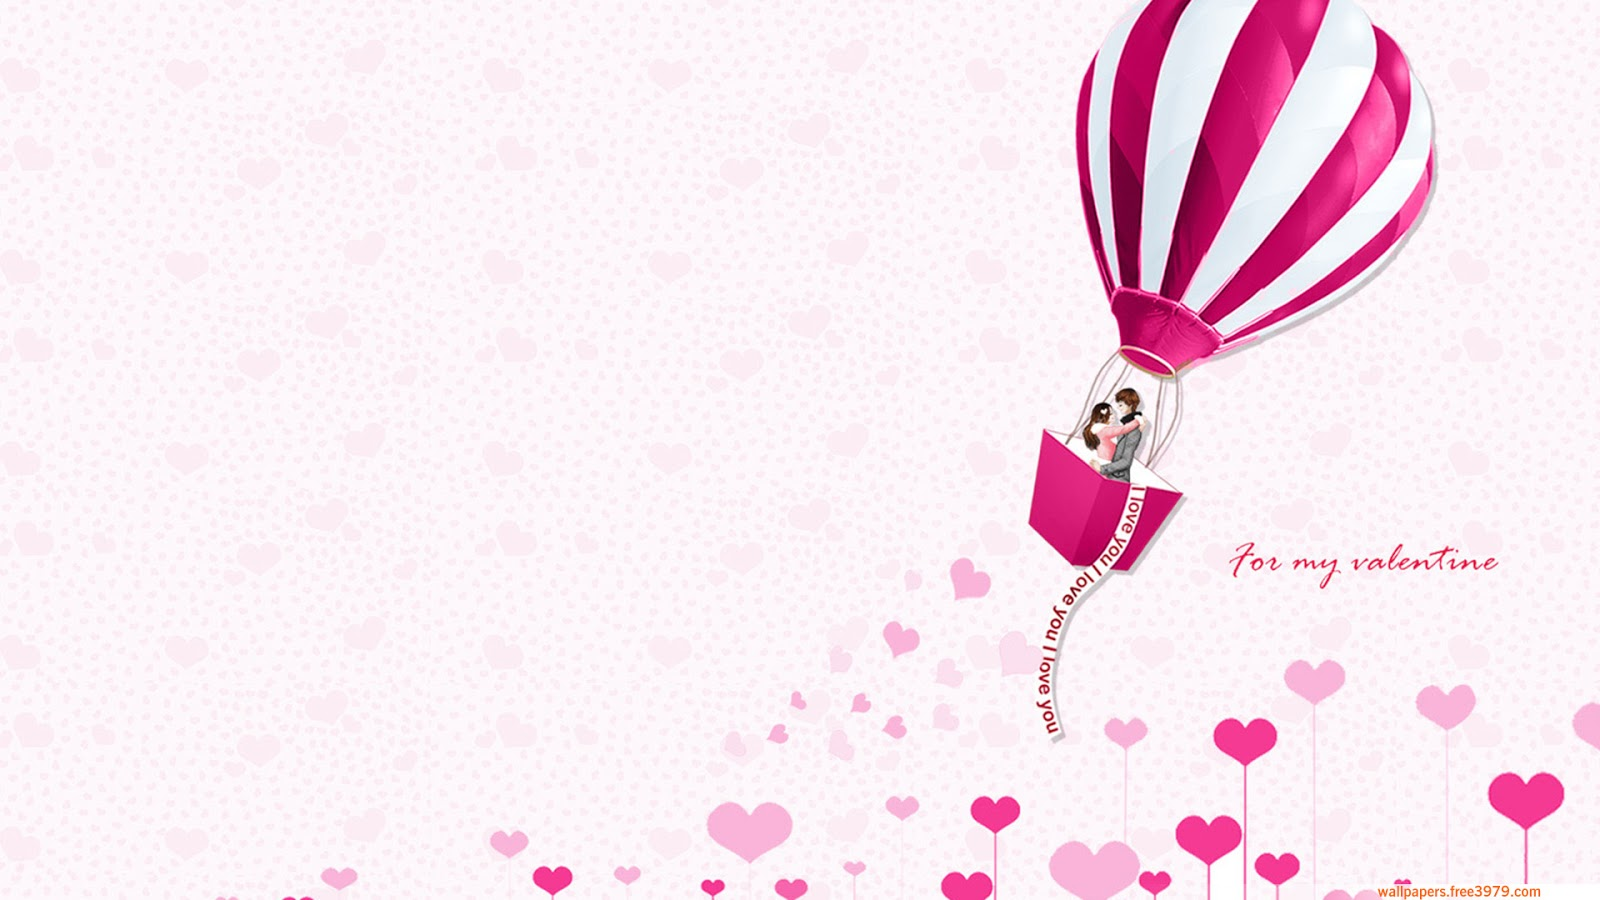 Wallpapers Wallpaper Cute Valentines Day Wallpapers 1600x900